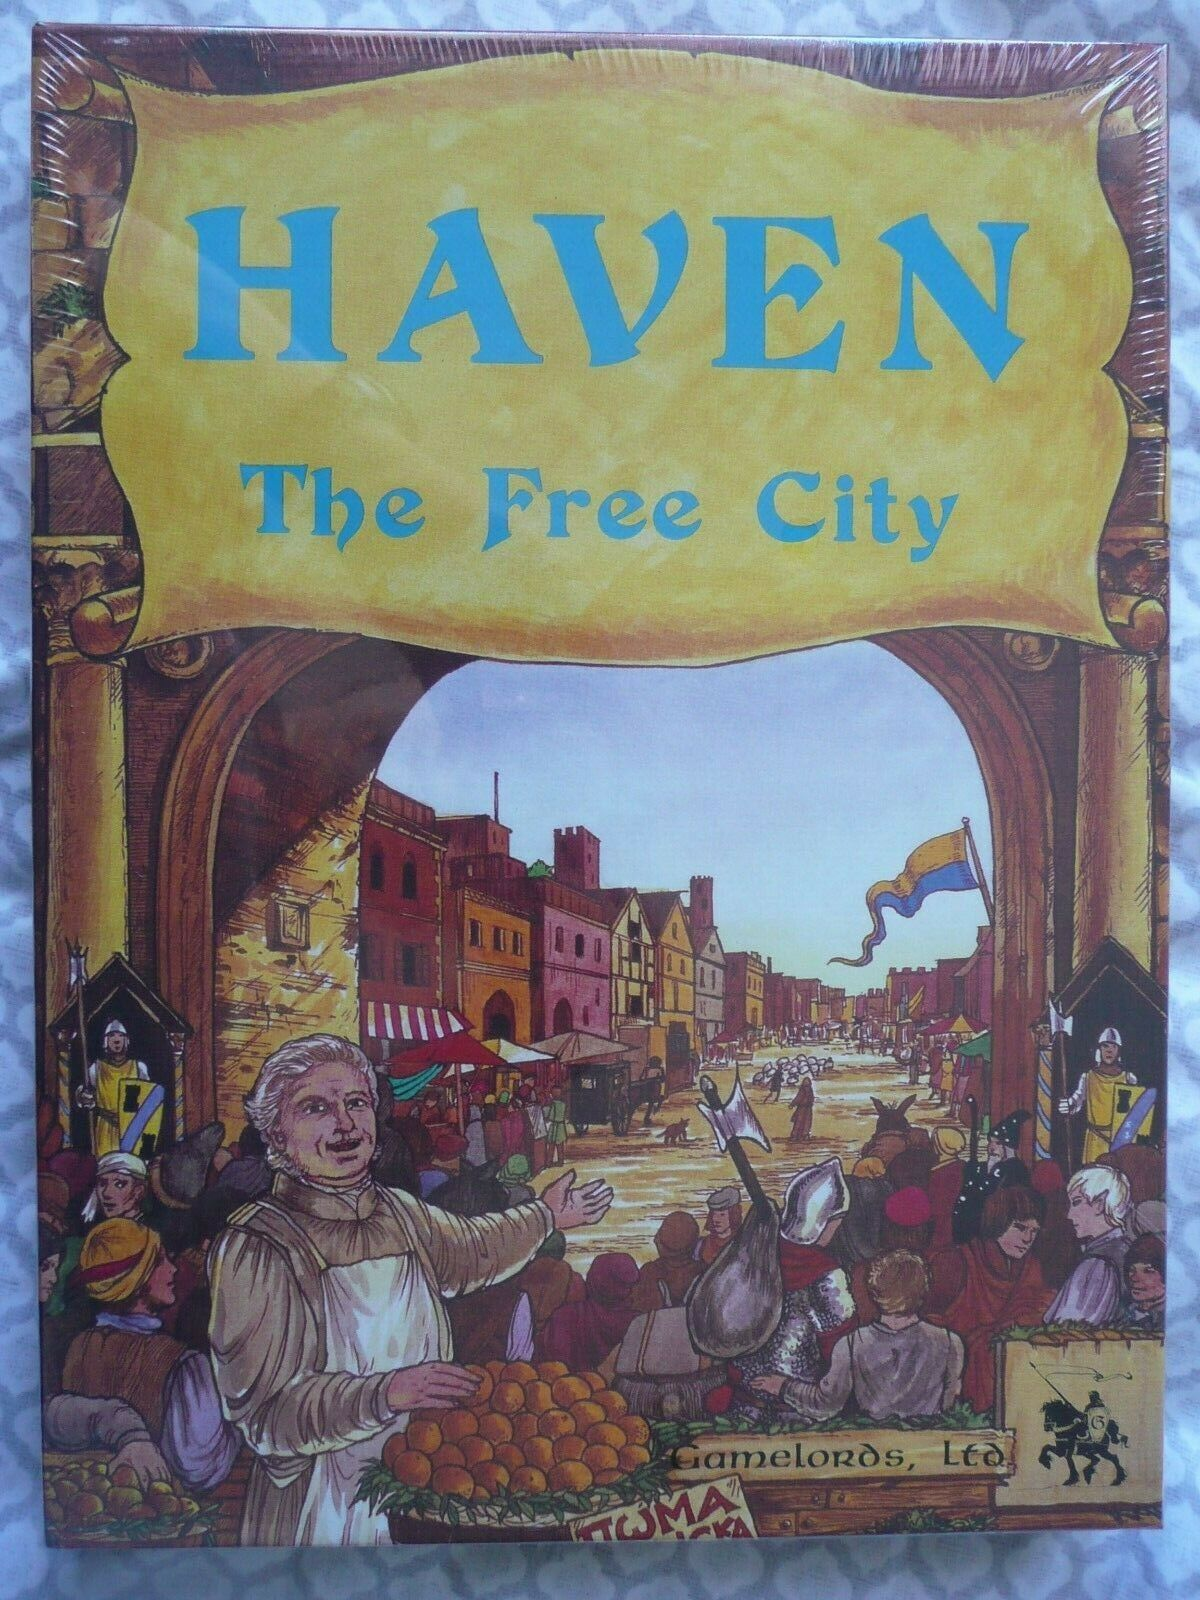 HAVEN THE FREE CITY (Gamelords 1984) • Thieves' Guild • M NM Unopened Unused